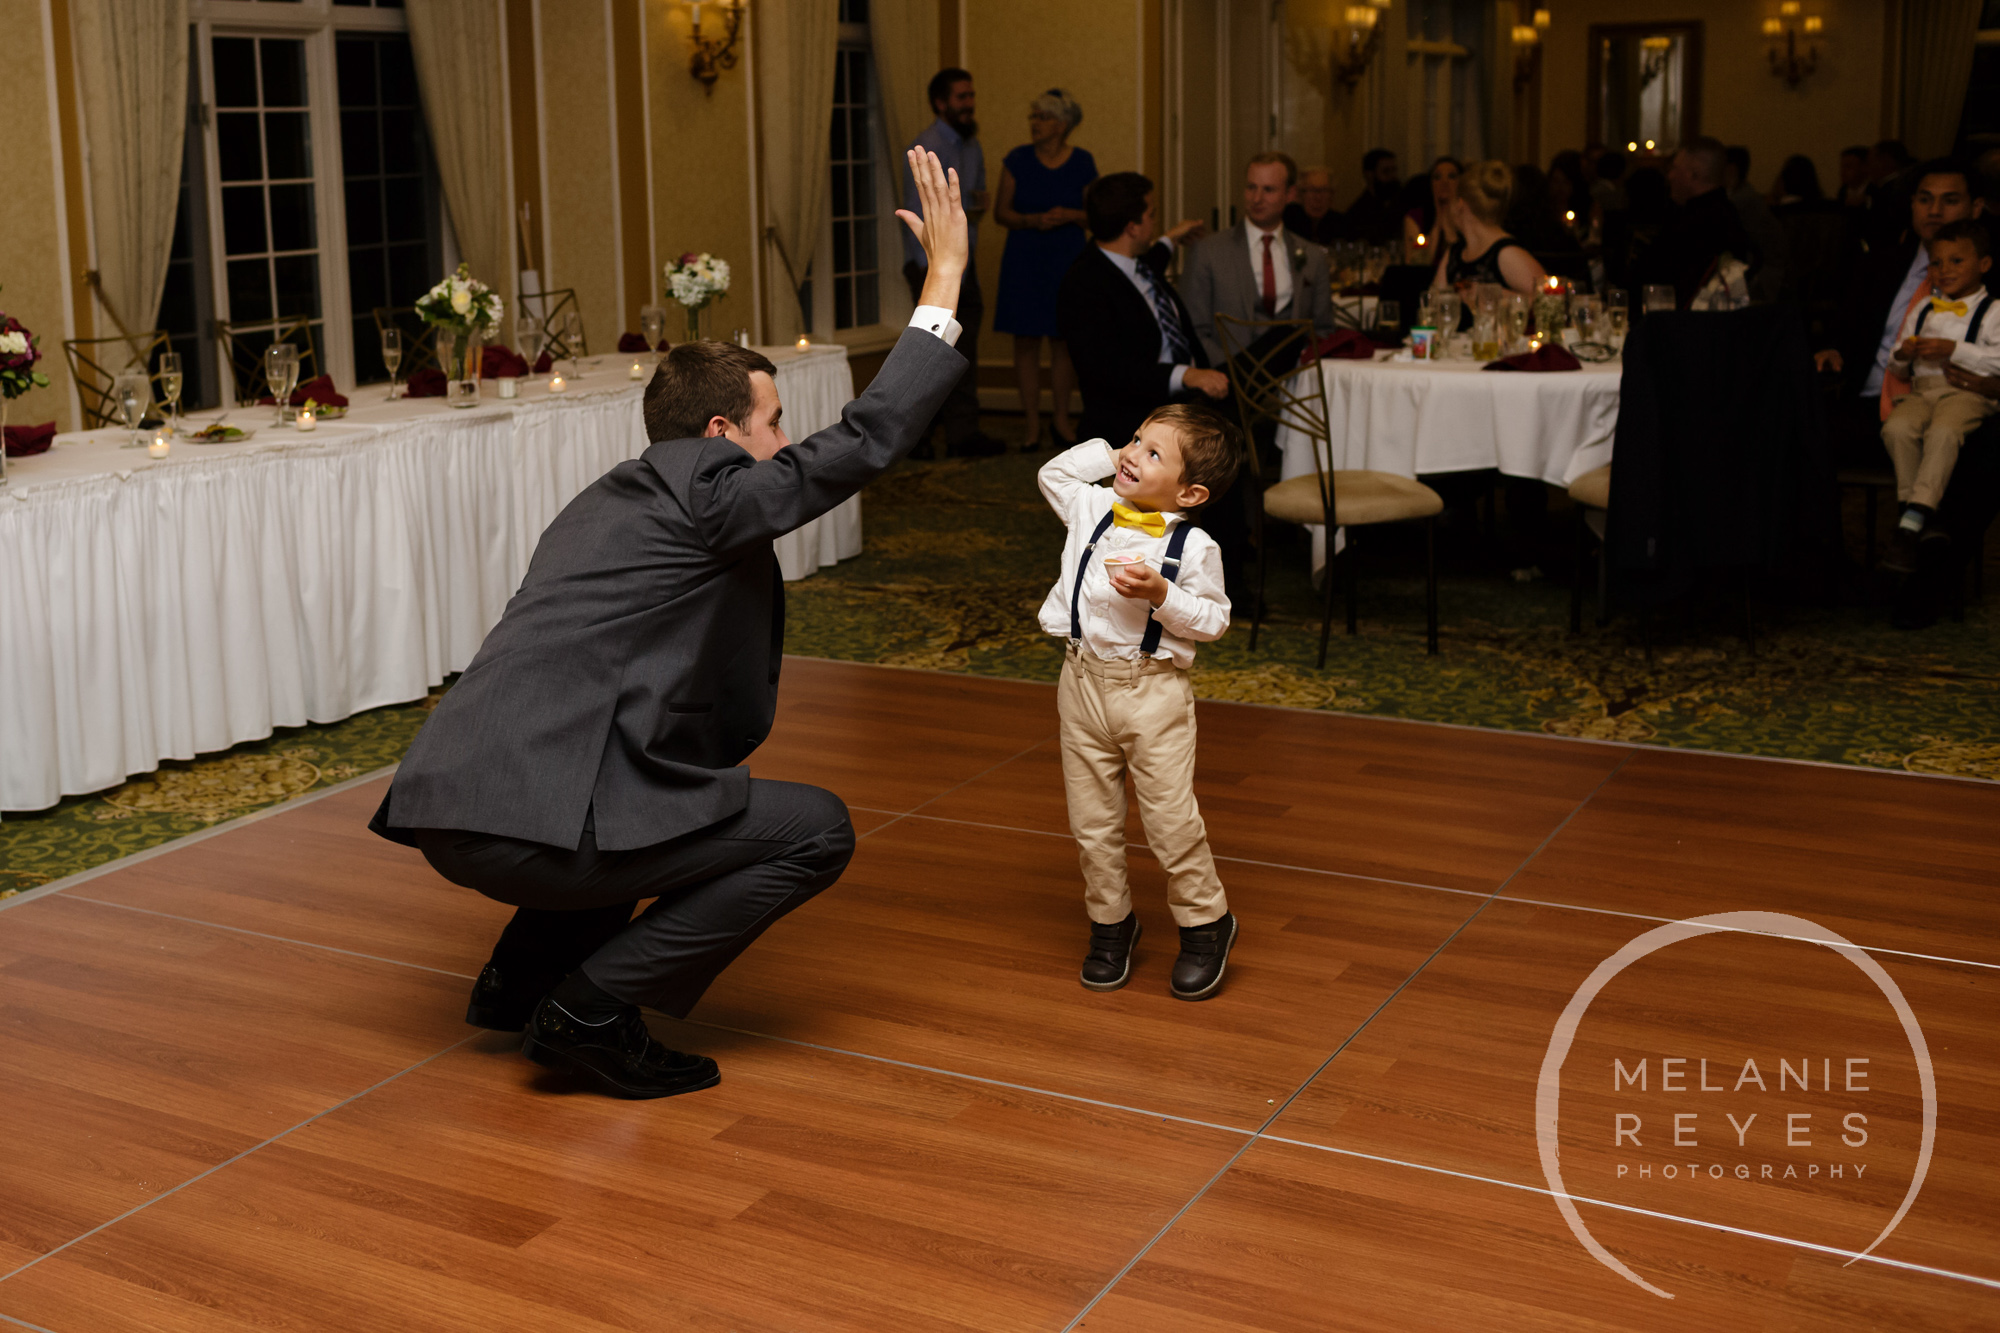 wedding_photographer_captured_moments_melaniereyes_158.jpg